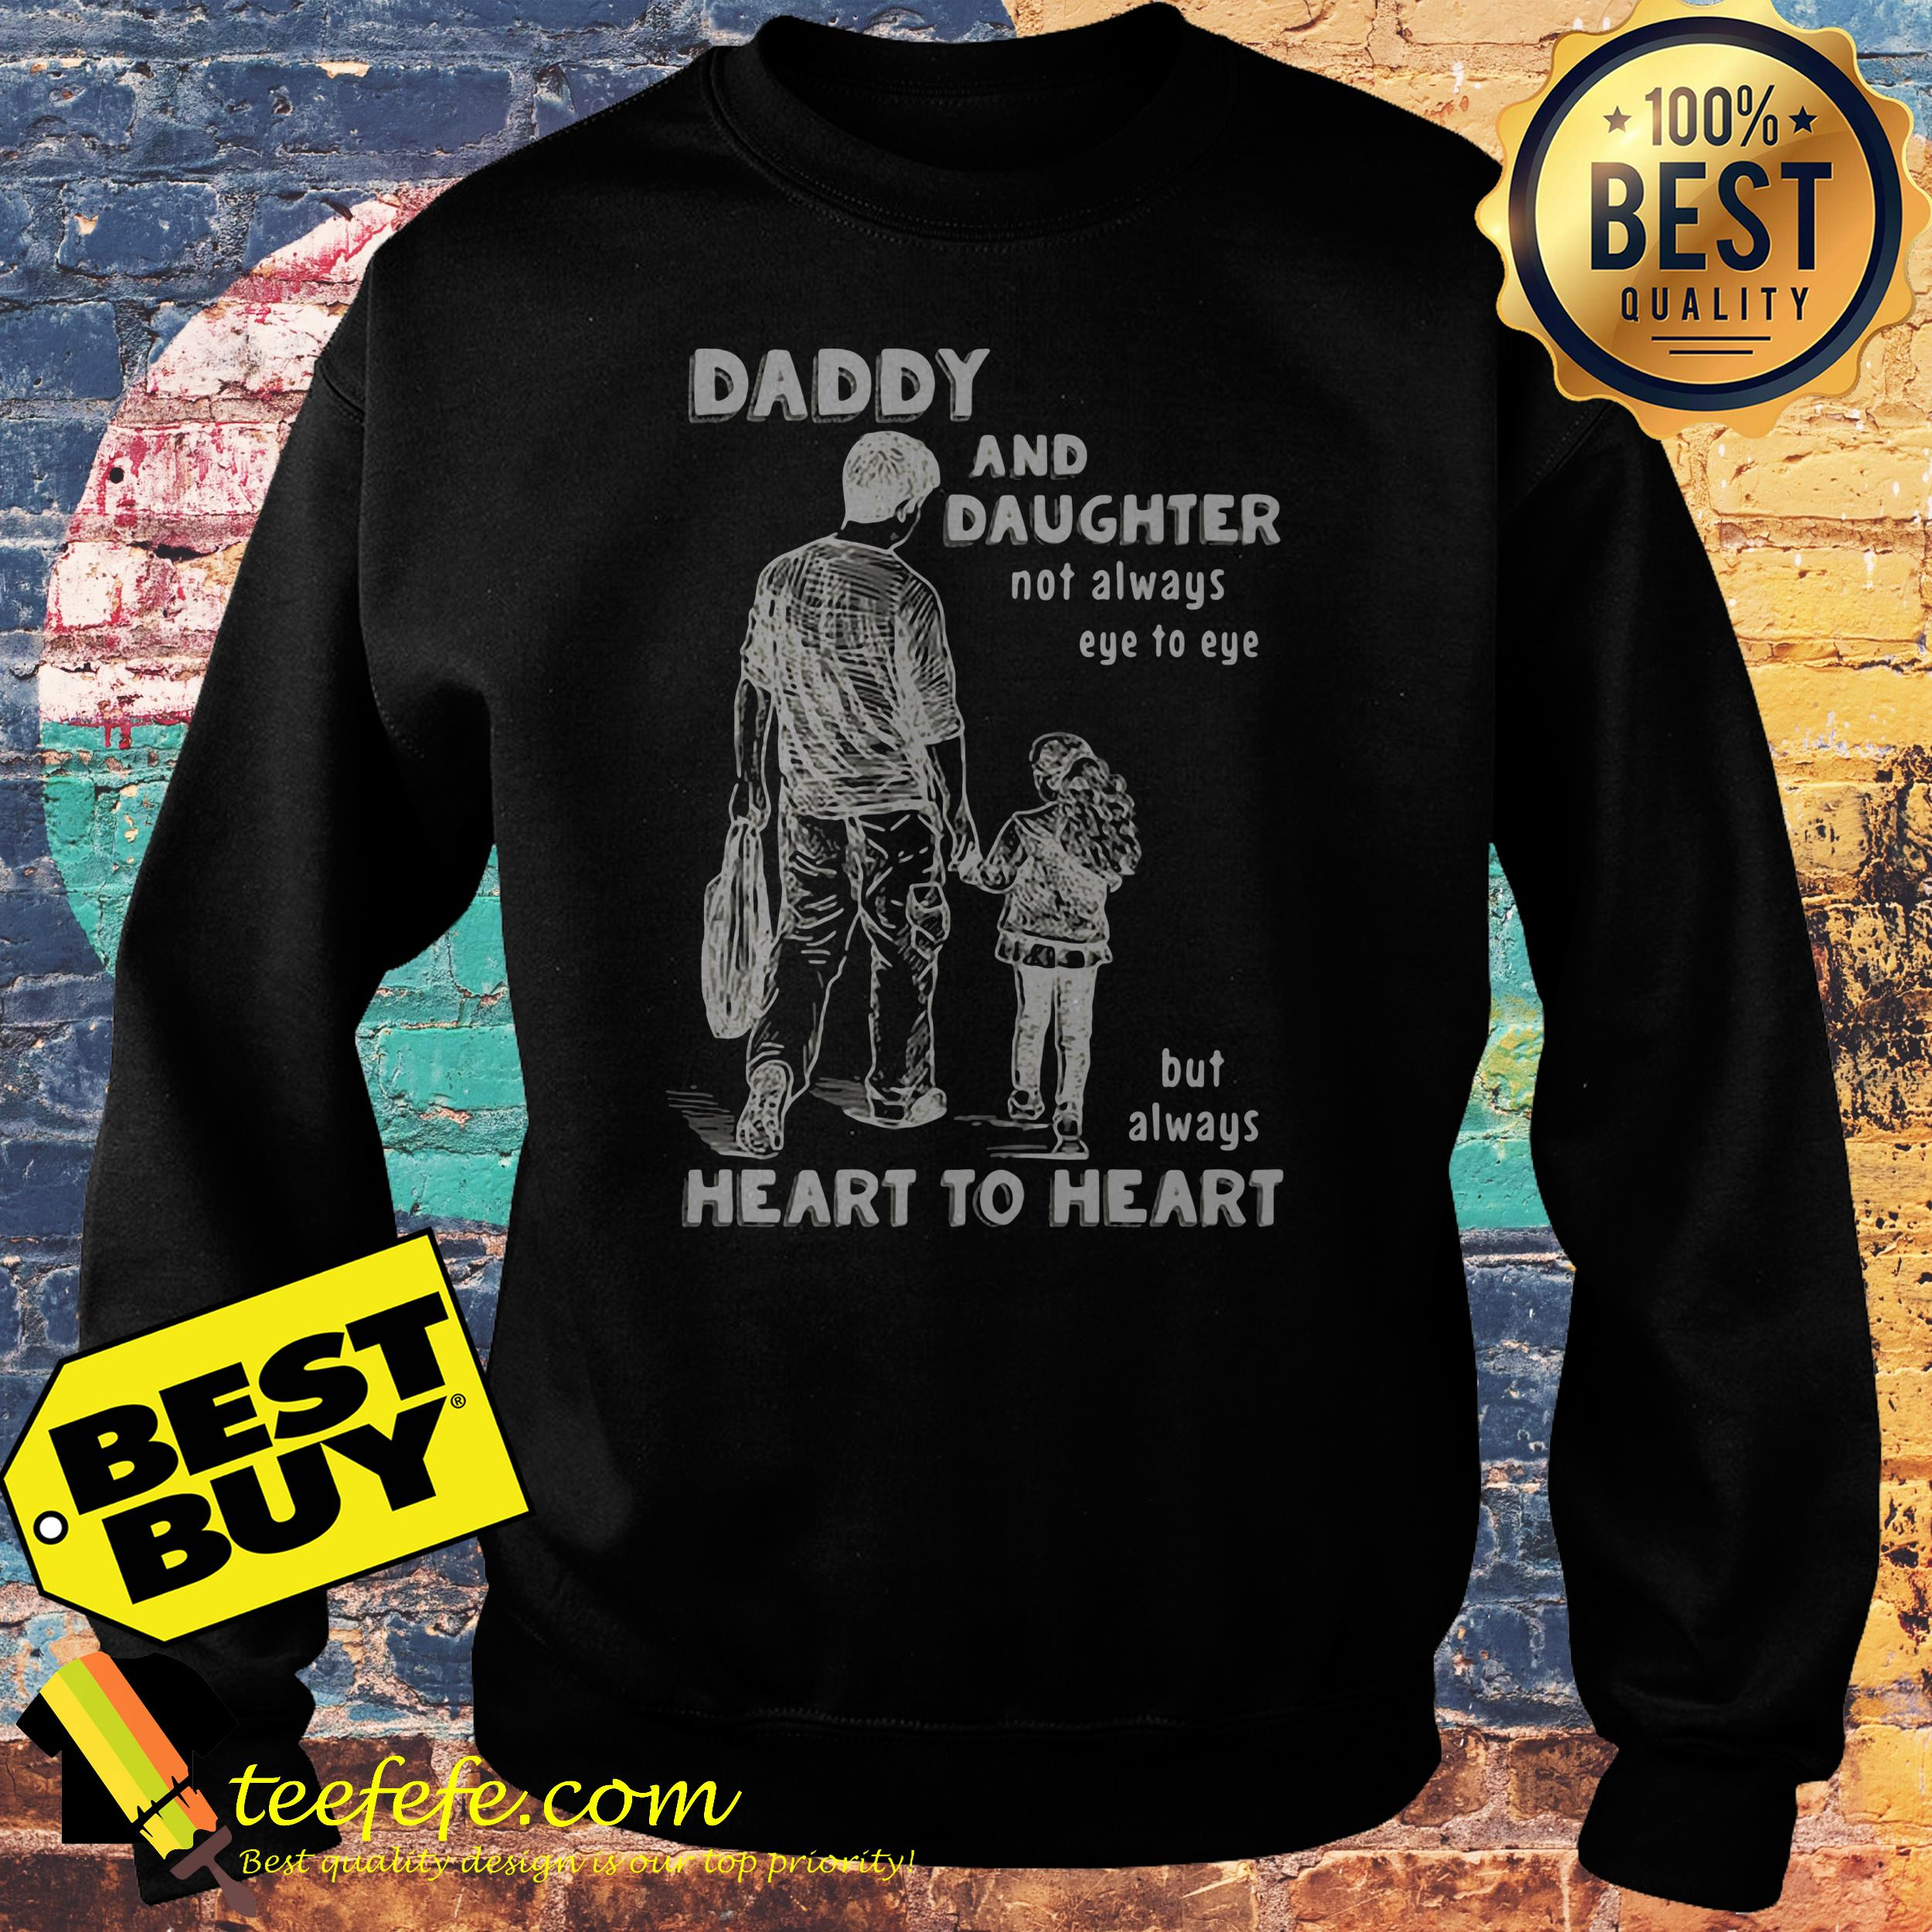 Daddy and daughter not always eye to eye but always heart to heart sweatshirt